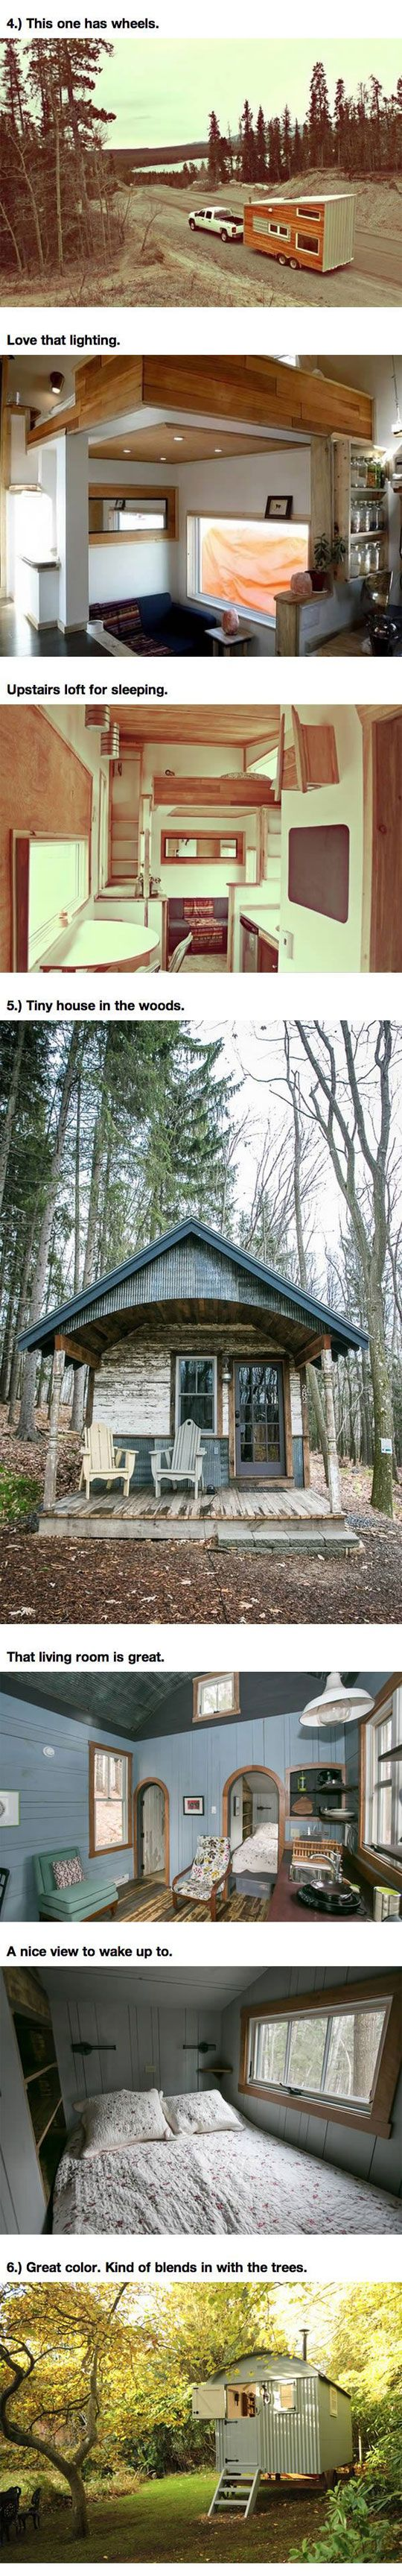 Some Of The Best Tiny Houses Ever Made - The Meta Picture